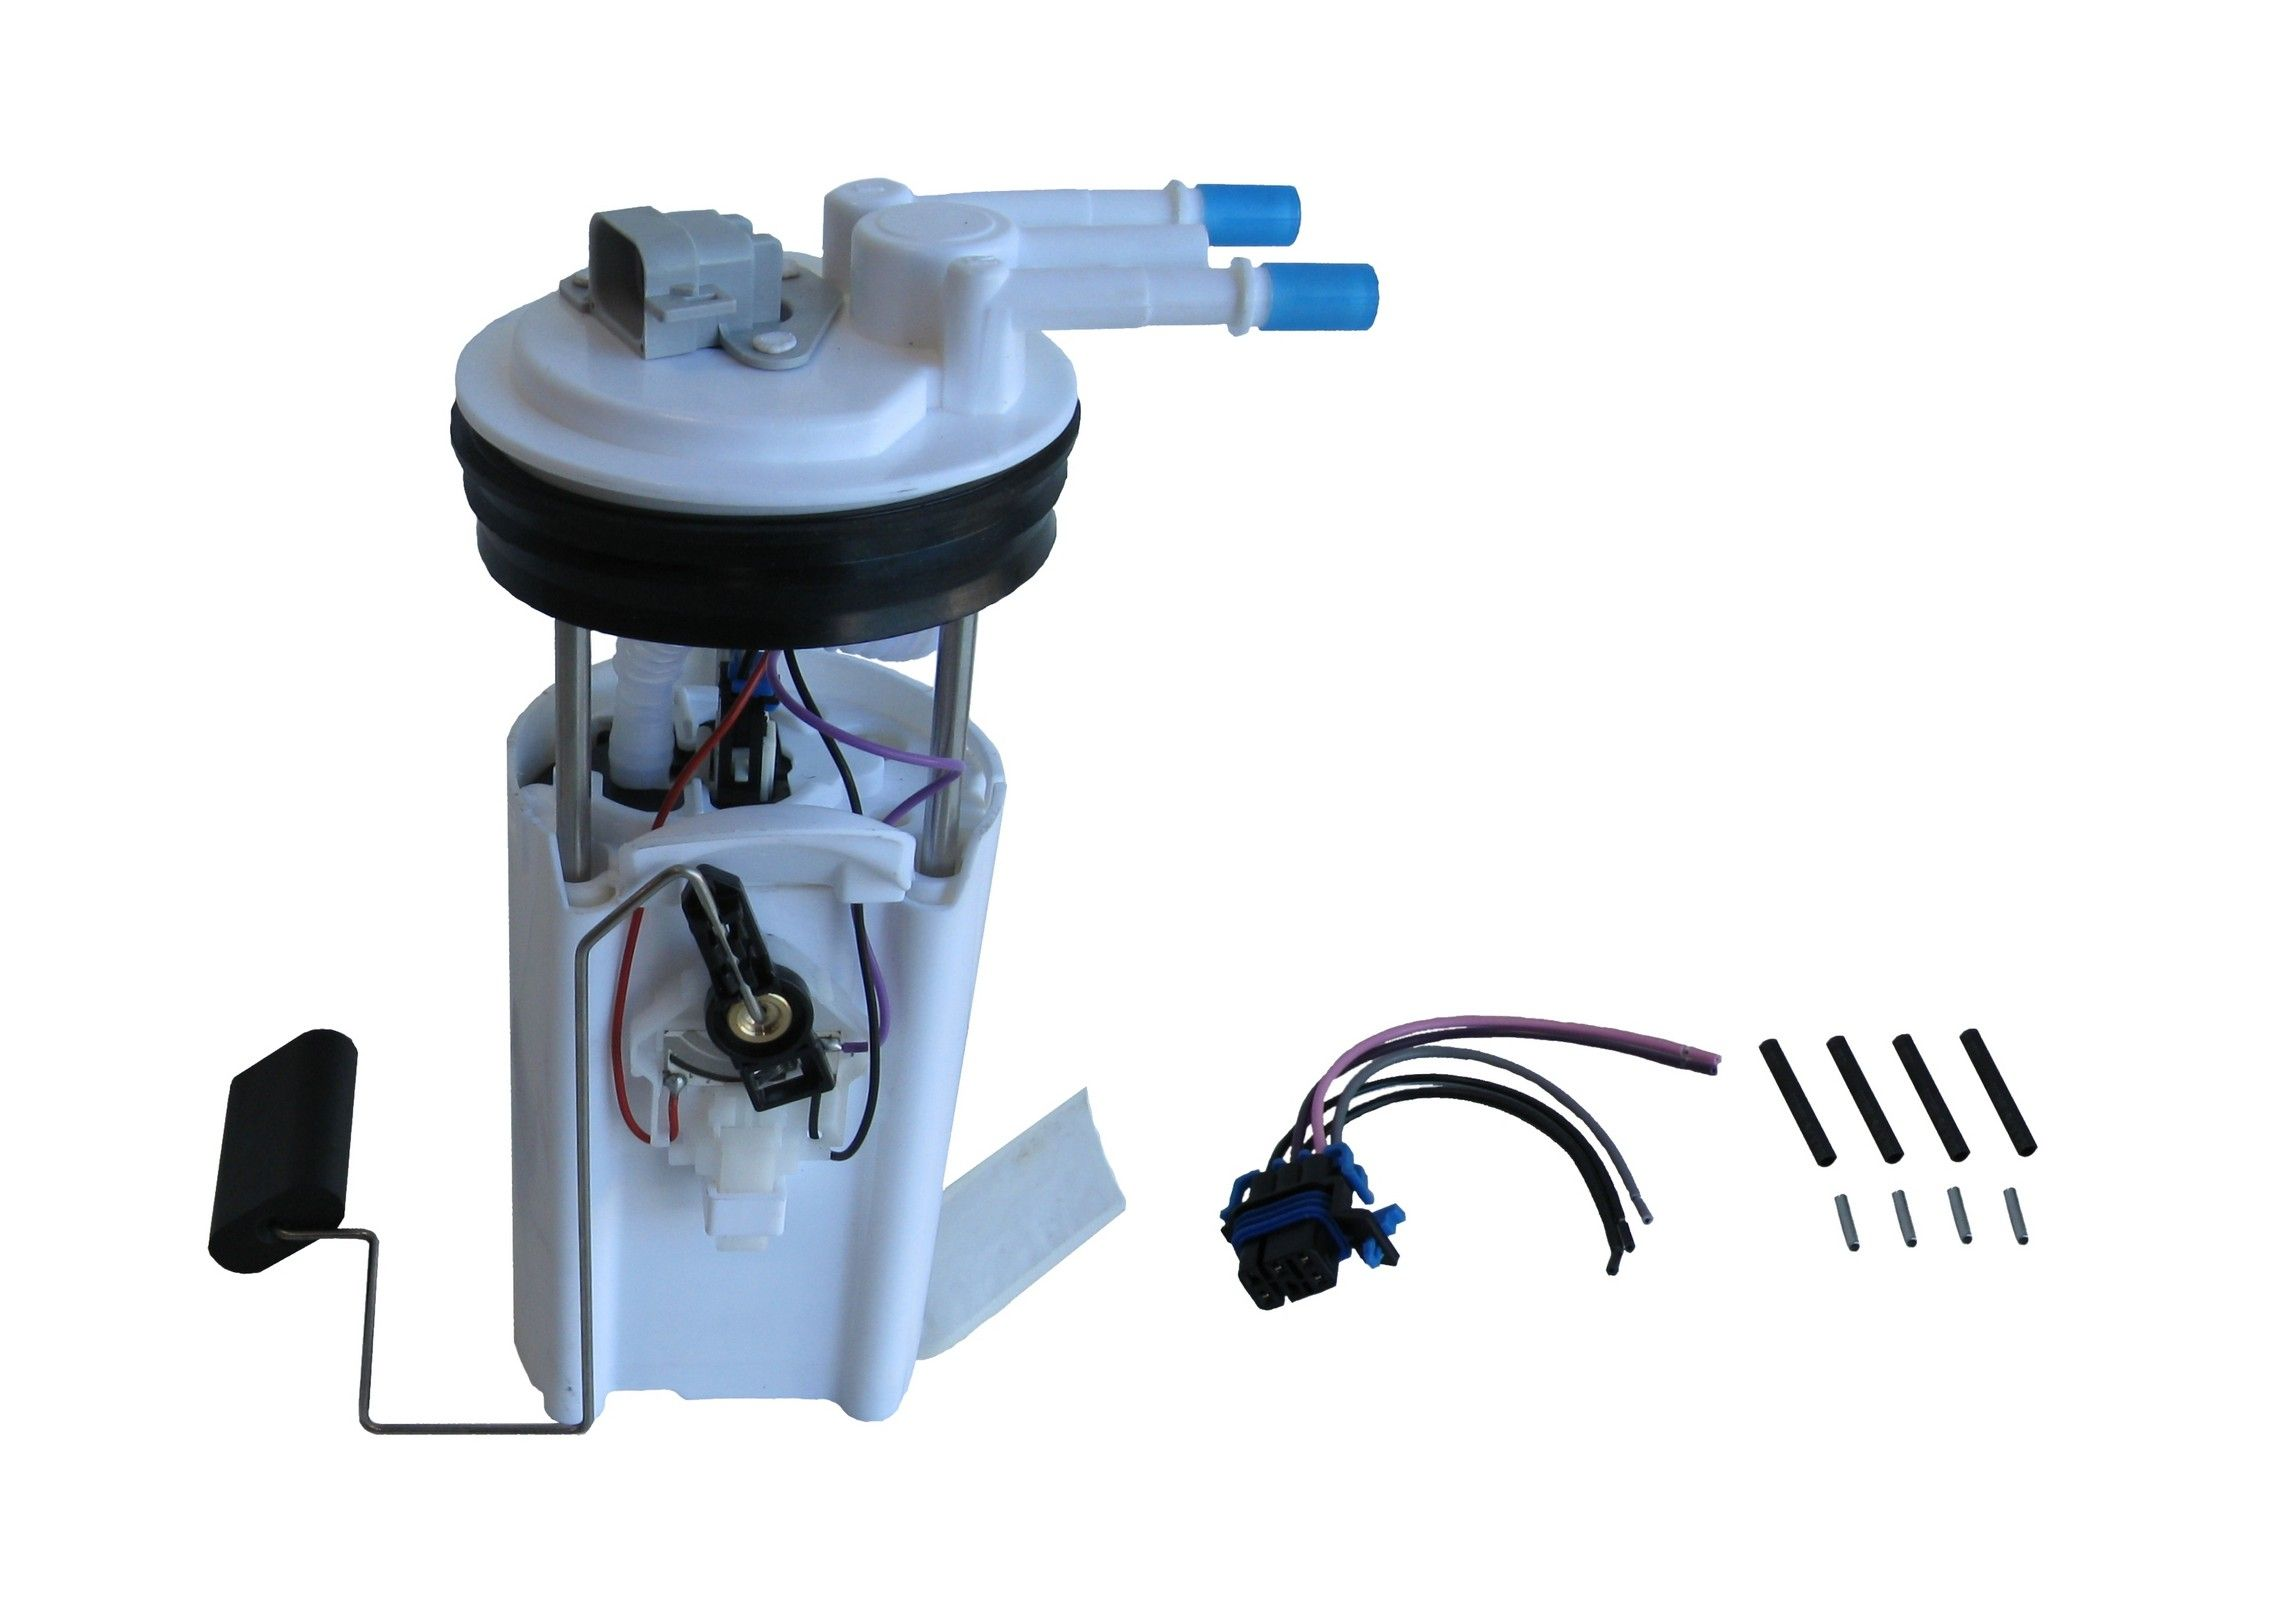 Cadillac Deville Fuel Pump Module Assembly Replacement Acdelco 1941 Wiring Harness 1994 8 Cyl 49l Autobest F2924a Stamped Epv On Sender Recommended Includes